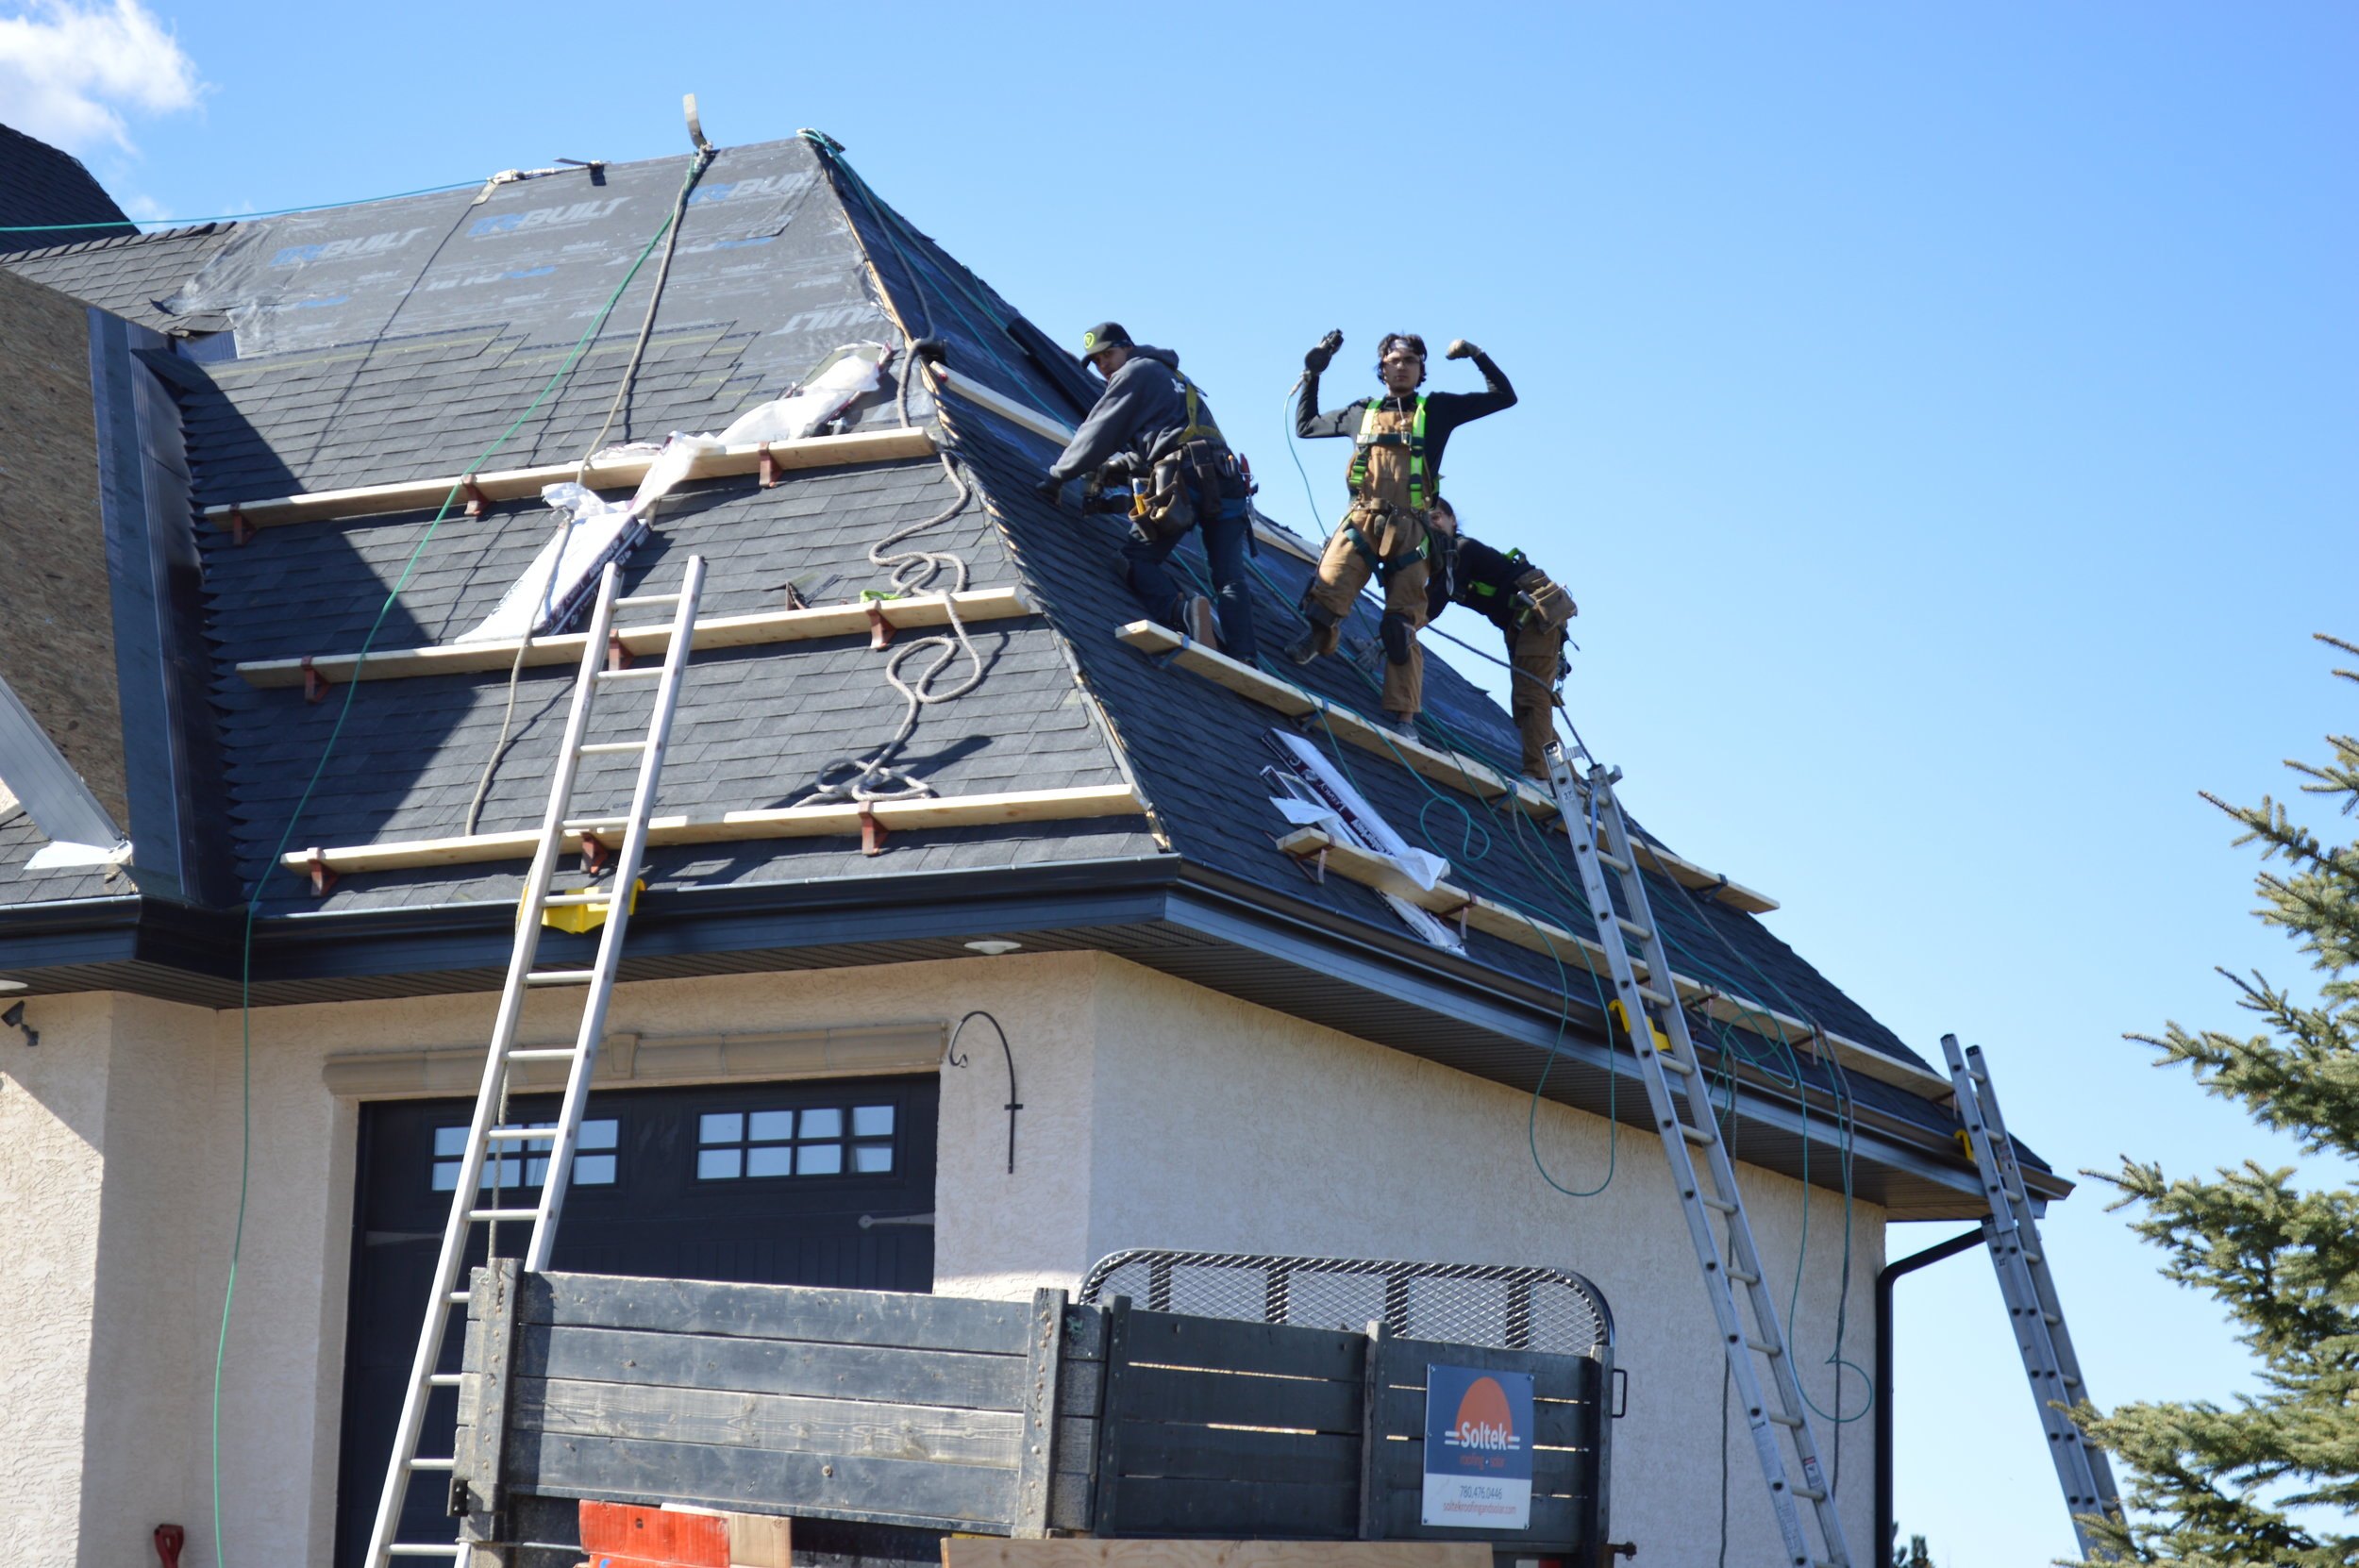 Roofers installing midnight black shingles on a tan stucco house